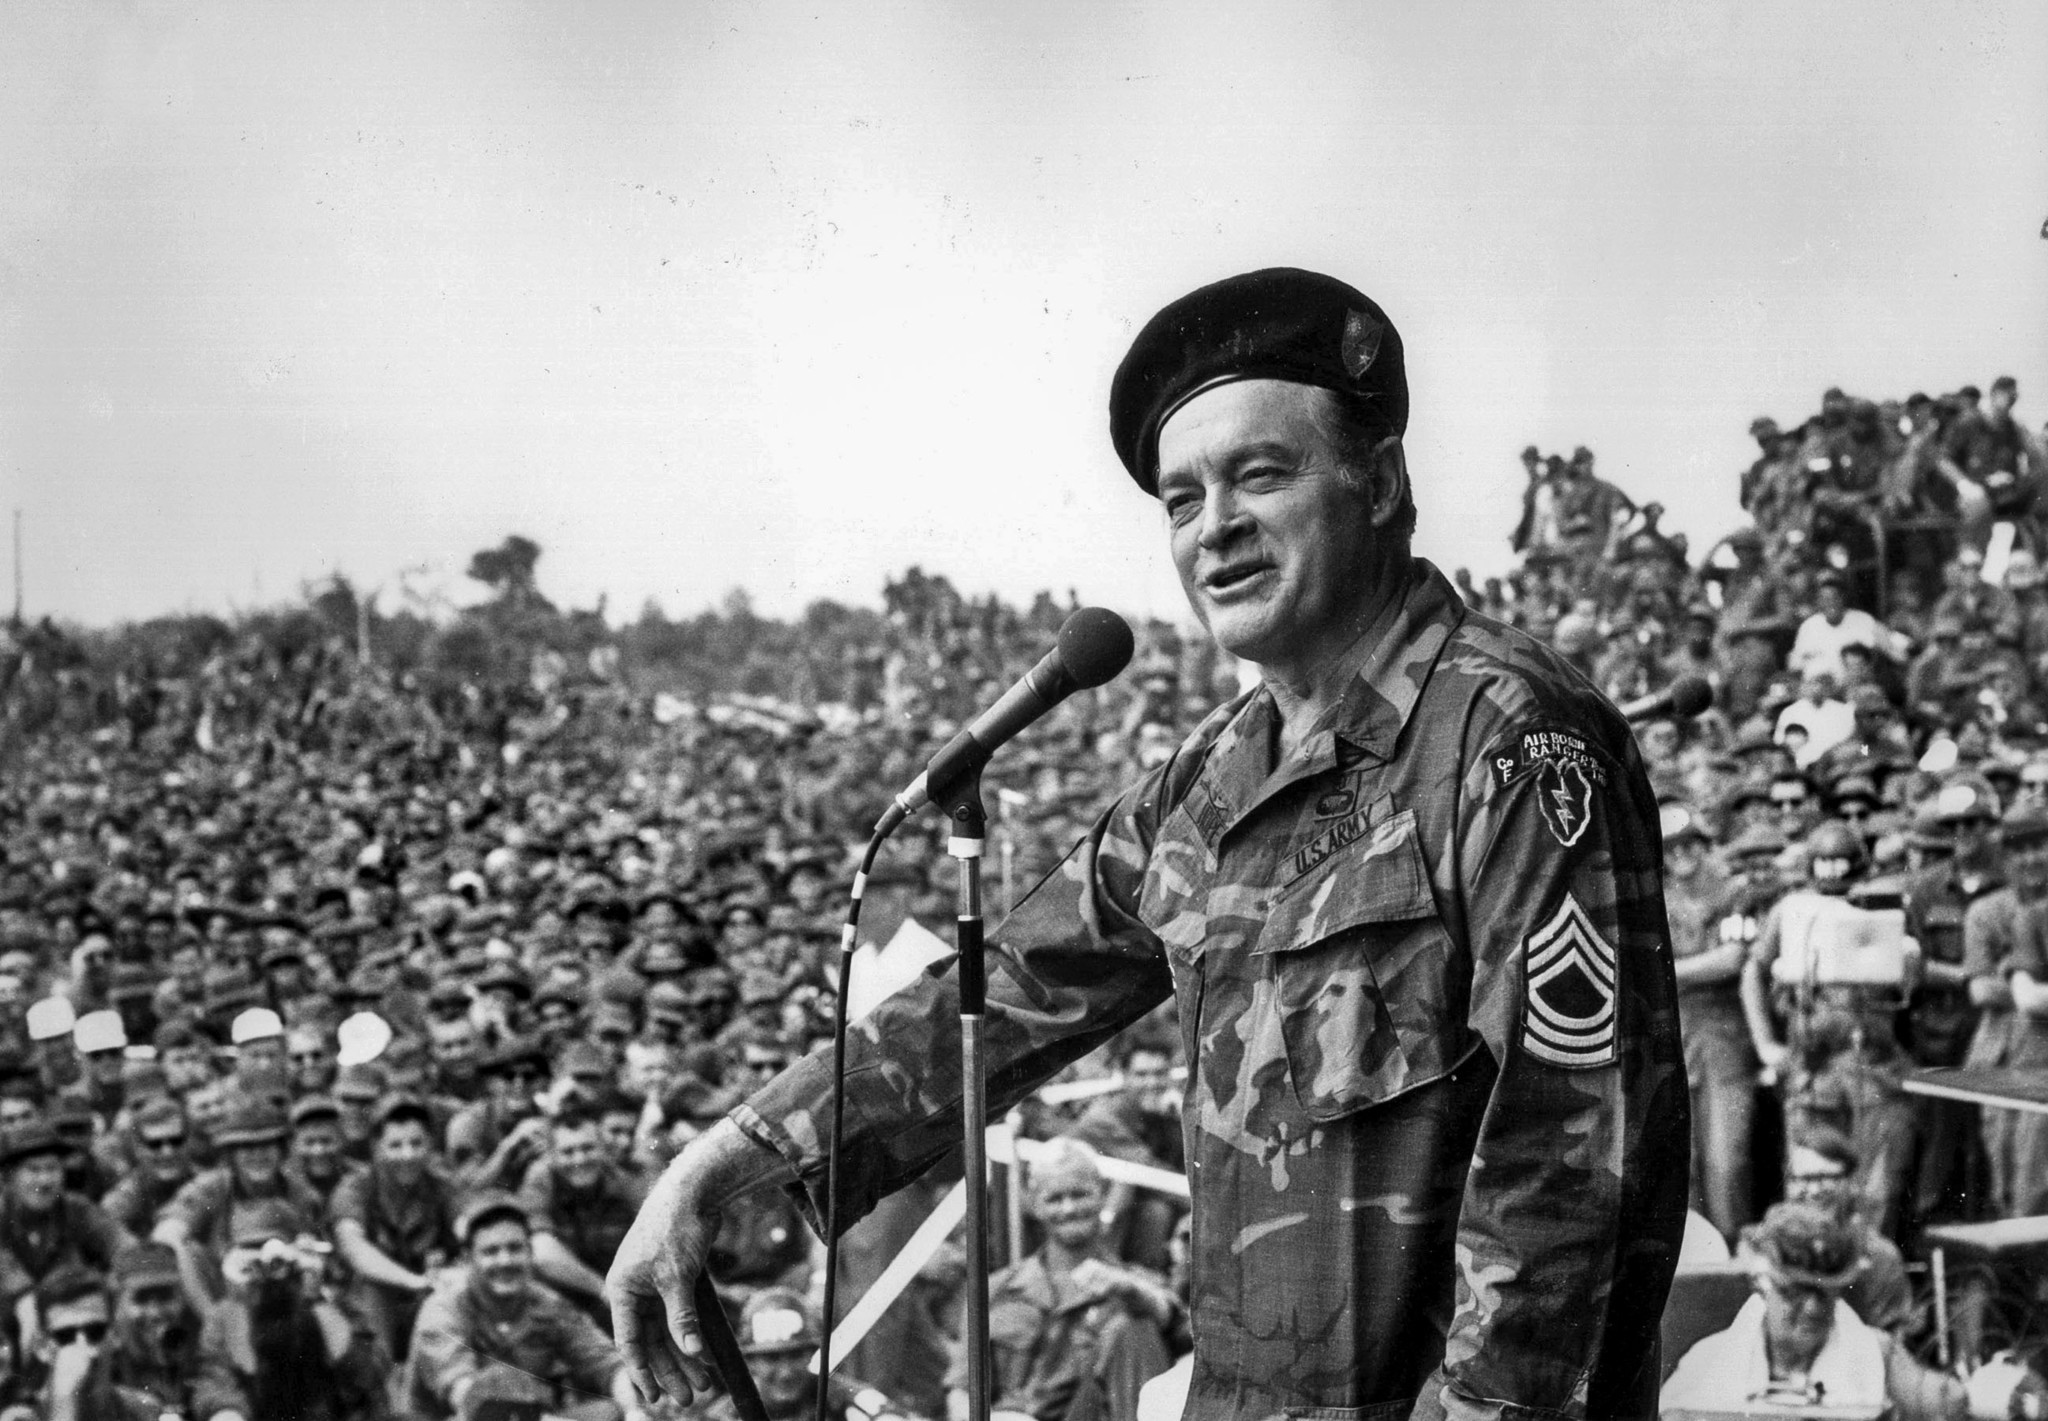 December 1971: Bob Hope entertains troops at Cu Chi, 20 miles northeast of Saigon.